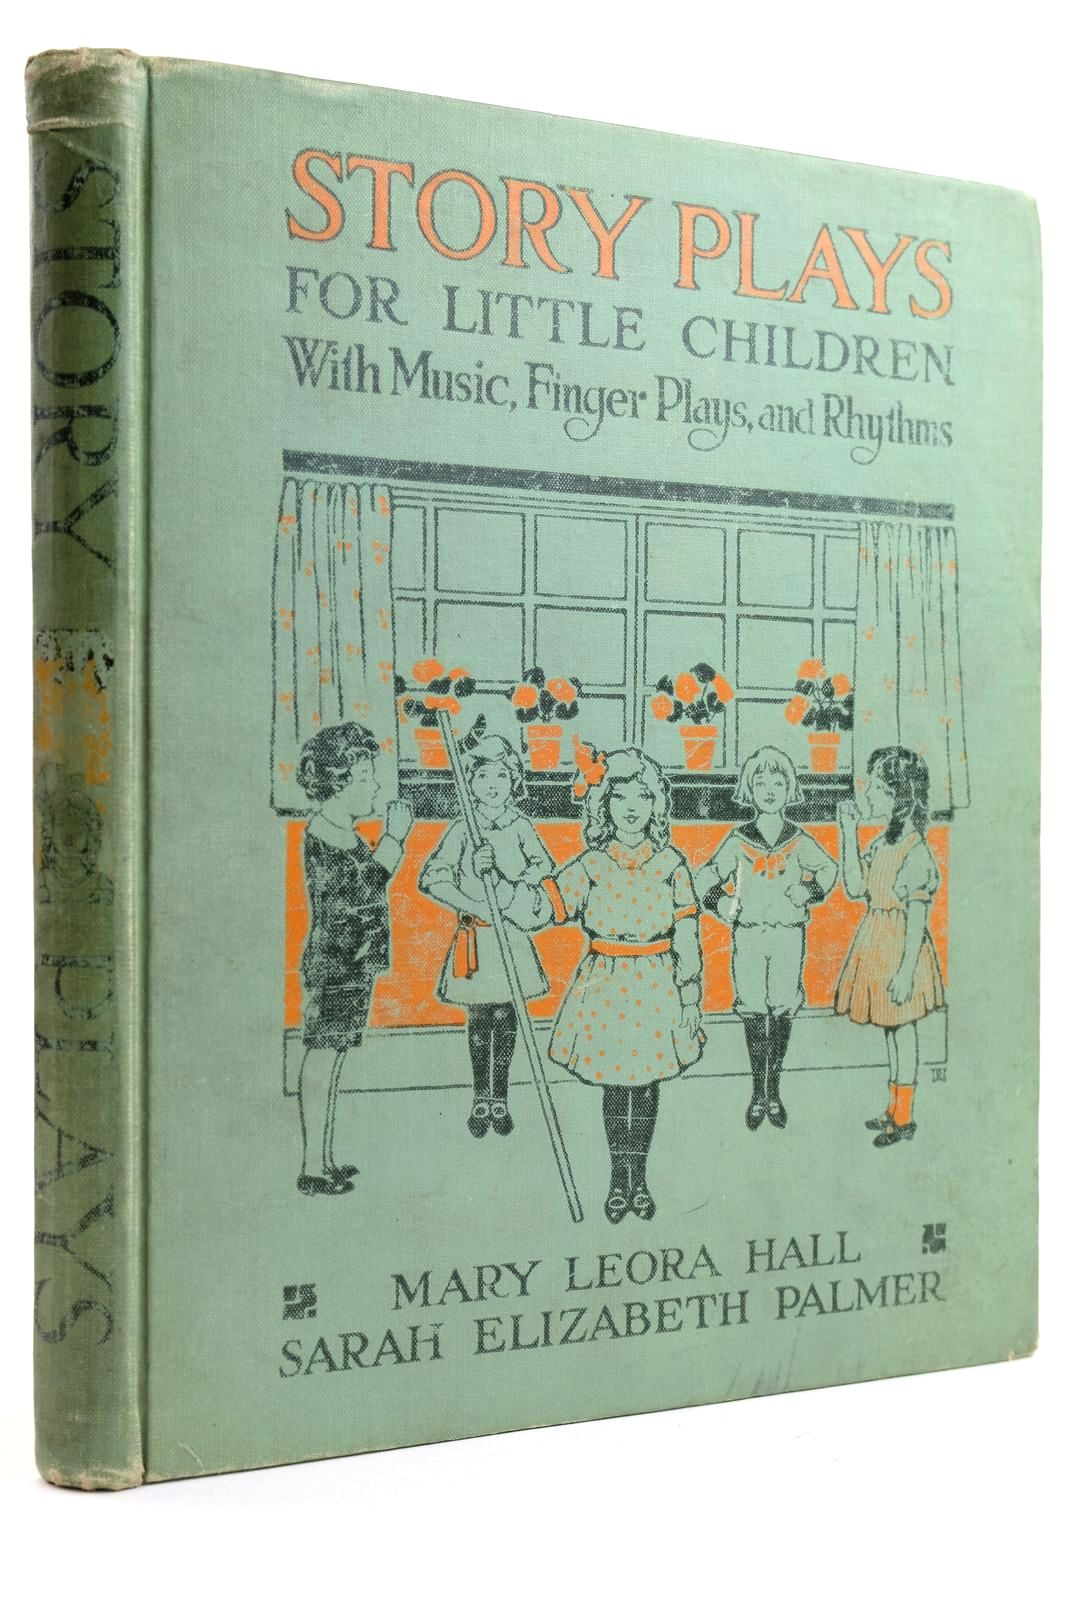 Photo of STORY PLAYS FOR LITTLE CHILDREN written by Hall, Mary Leora Palmer, Sarah Elizabeth published by Lothrop, Lee & Shepard Co. (STOCK CODE: 2132131)  for sale by Stella & Rose's Books